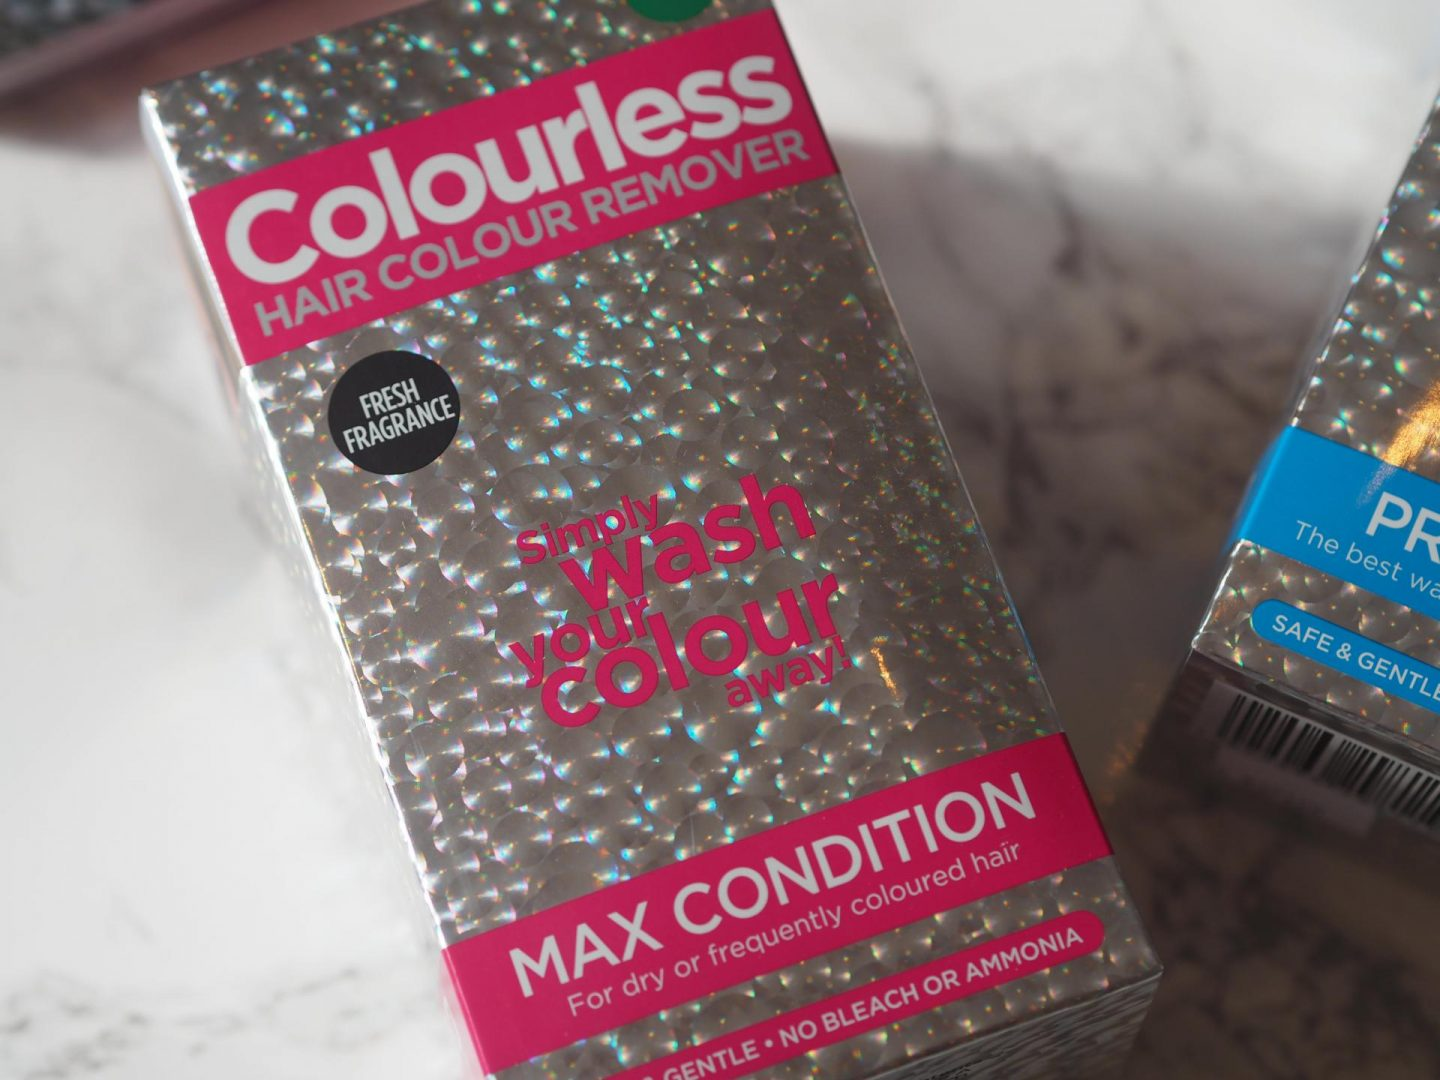 colourless hair colour remover max condition instructions